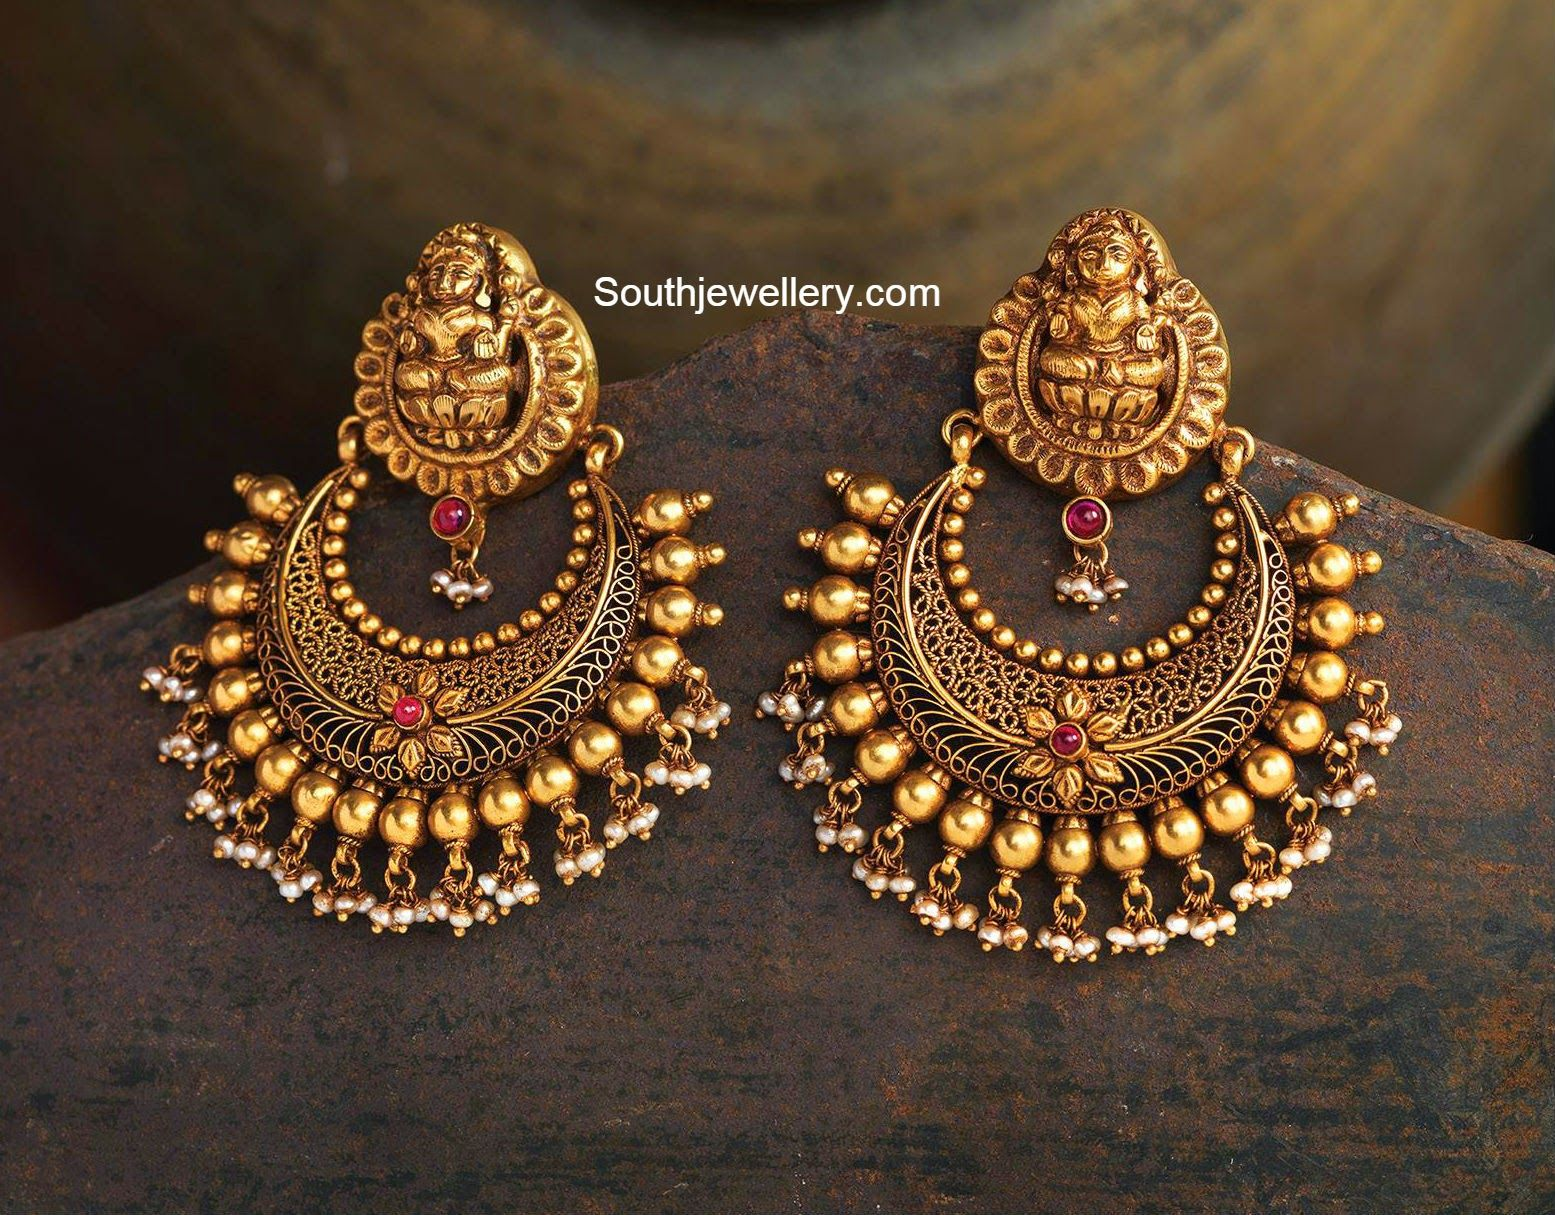 22 carat gold antique toned latest model chandbalis with Goddess ...